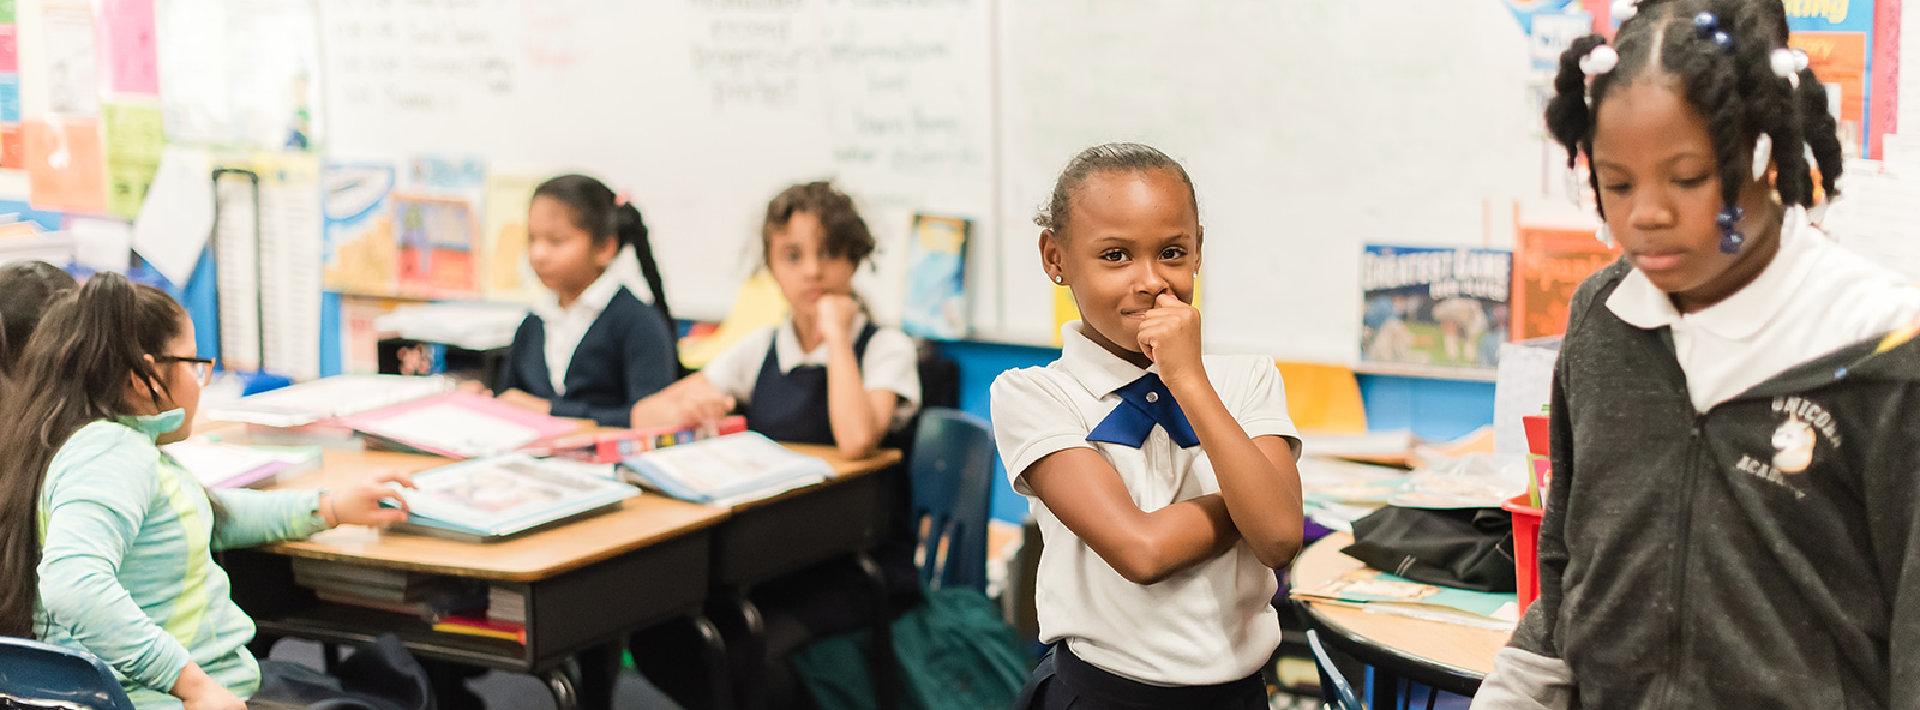 portrait of student inside the classroom